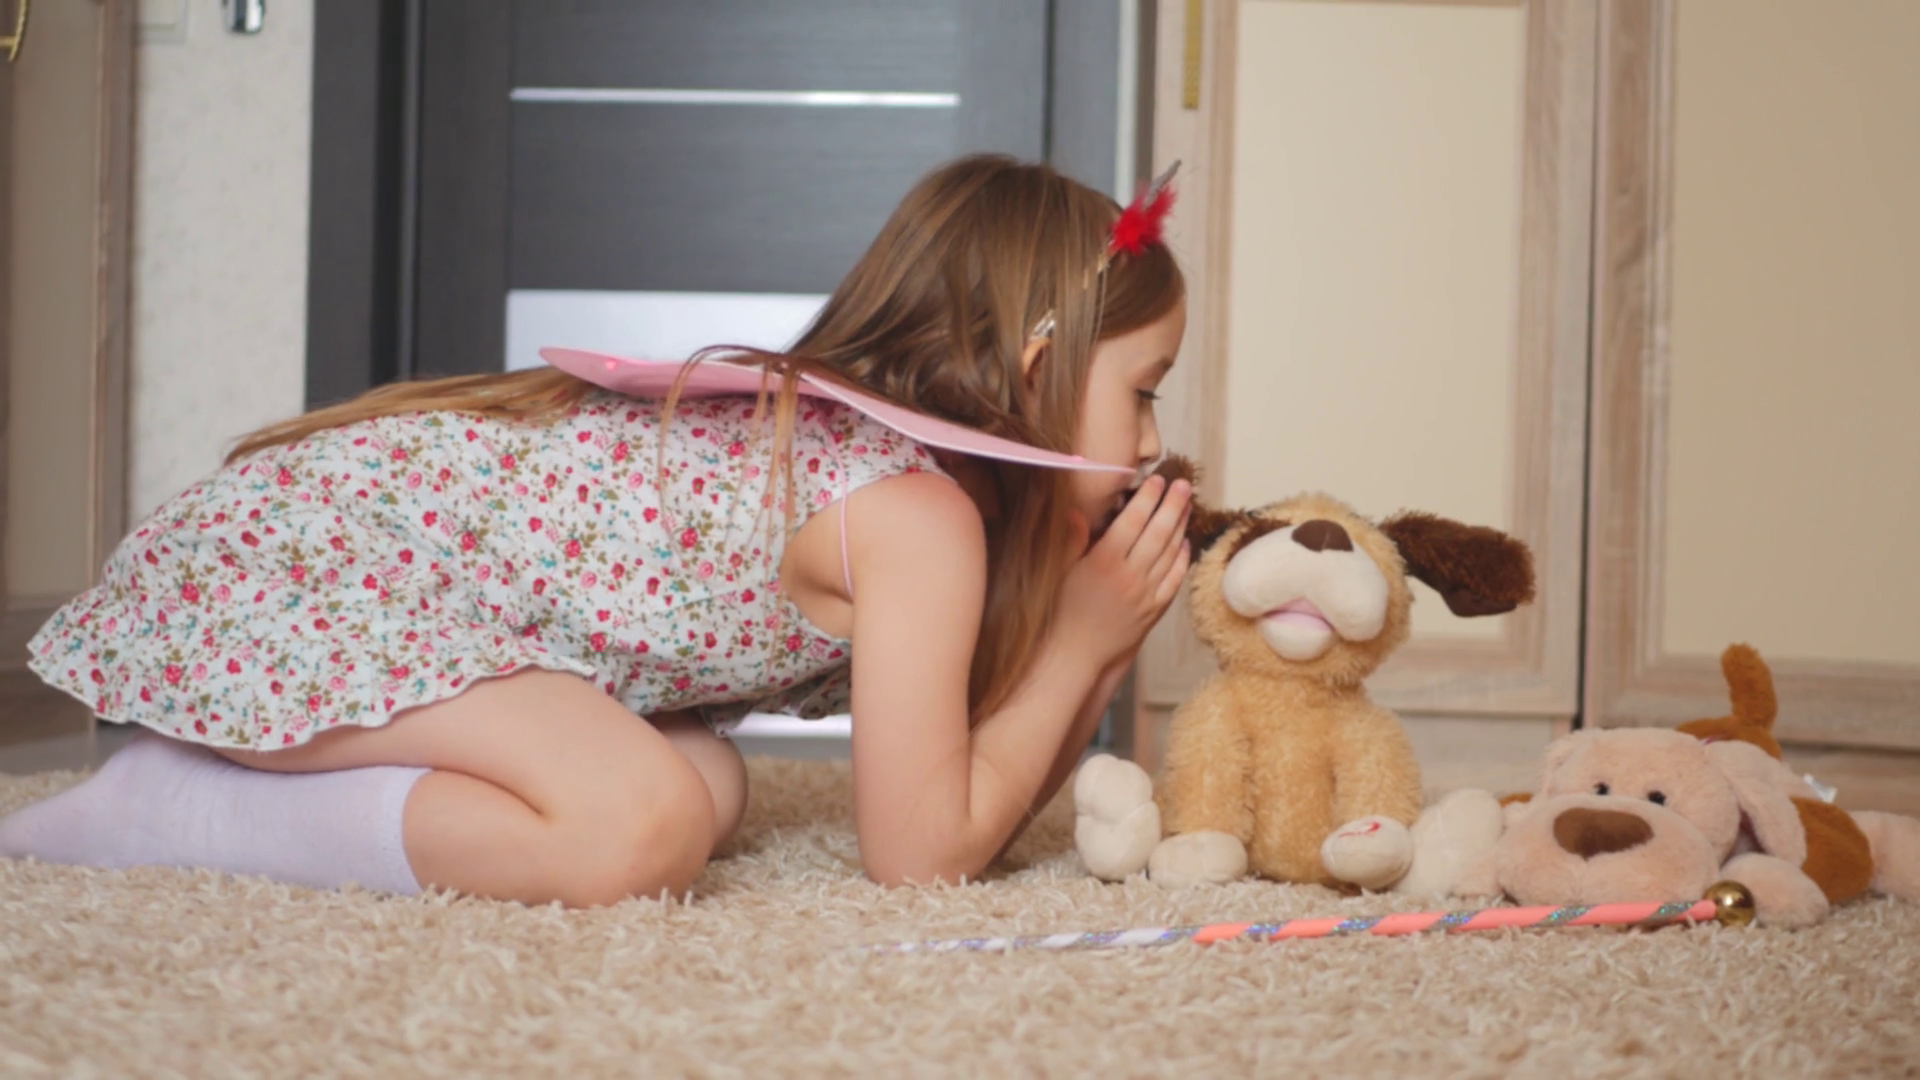 Happy Little Girl Plays with Plush Toys in Her Room. Stock Video Footage - Storyblocks